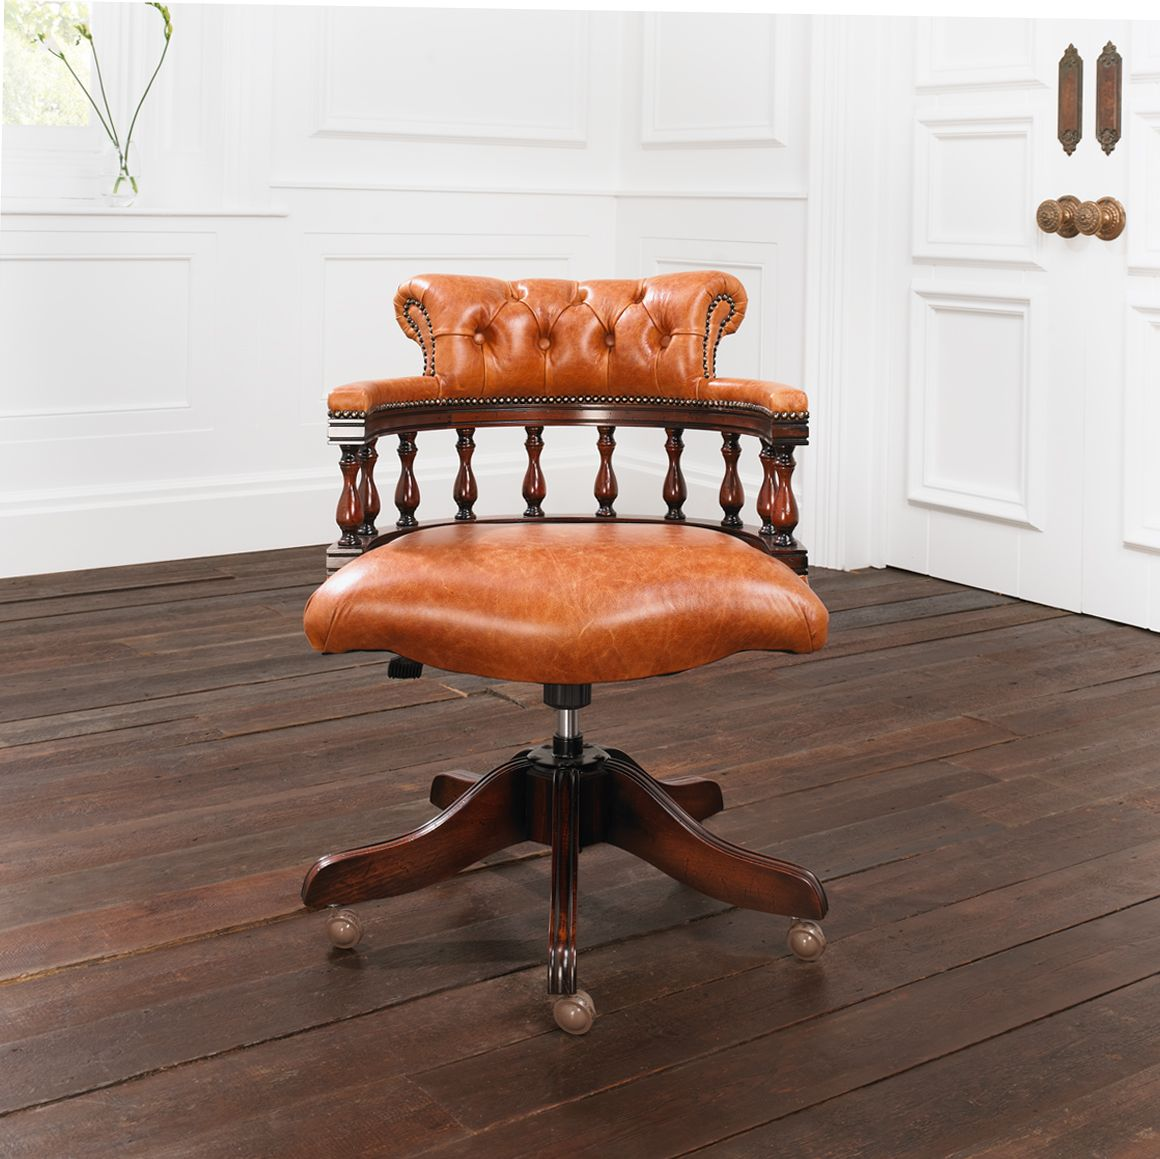 captains chair for sale nothing more special than seafaring style